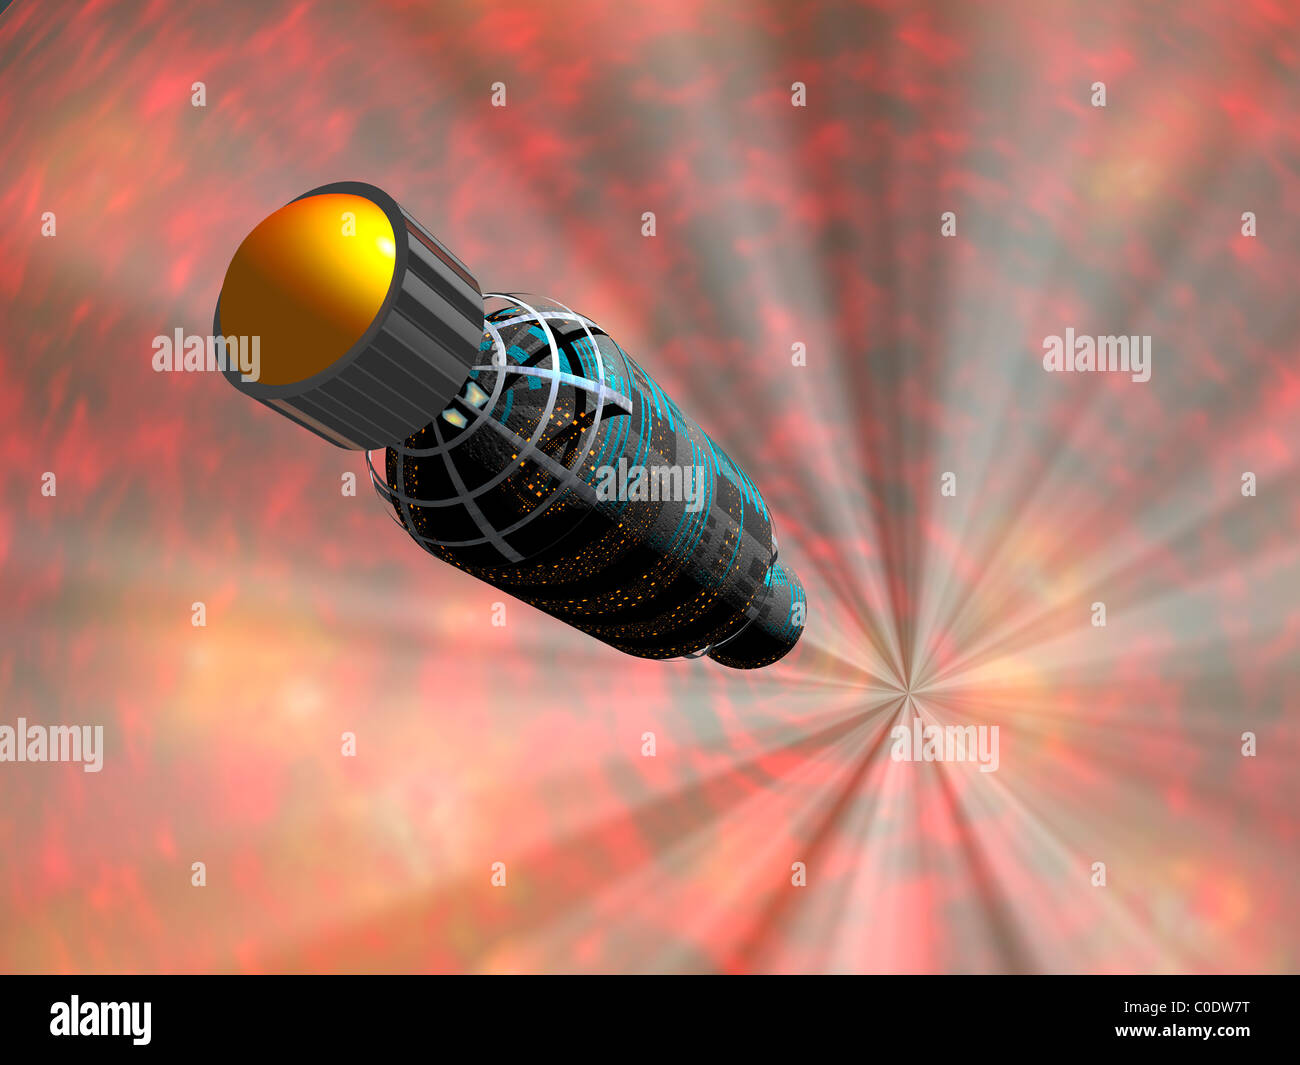 Illustration of a spacecraft travelling faster than the speed of light. - Stock Image